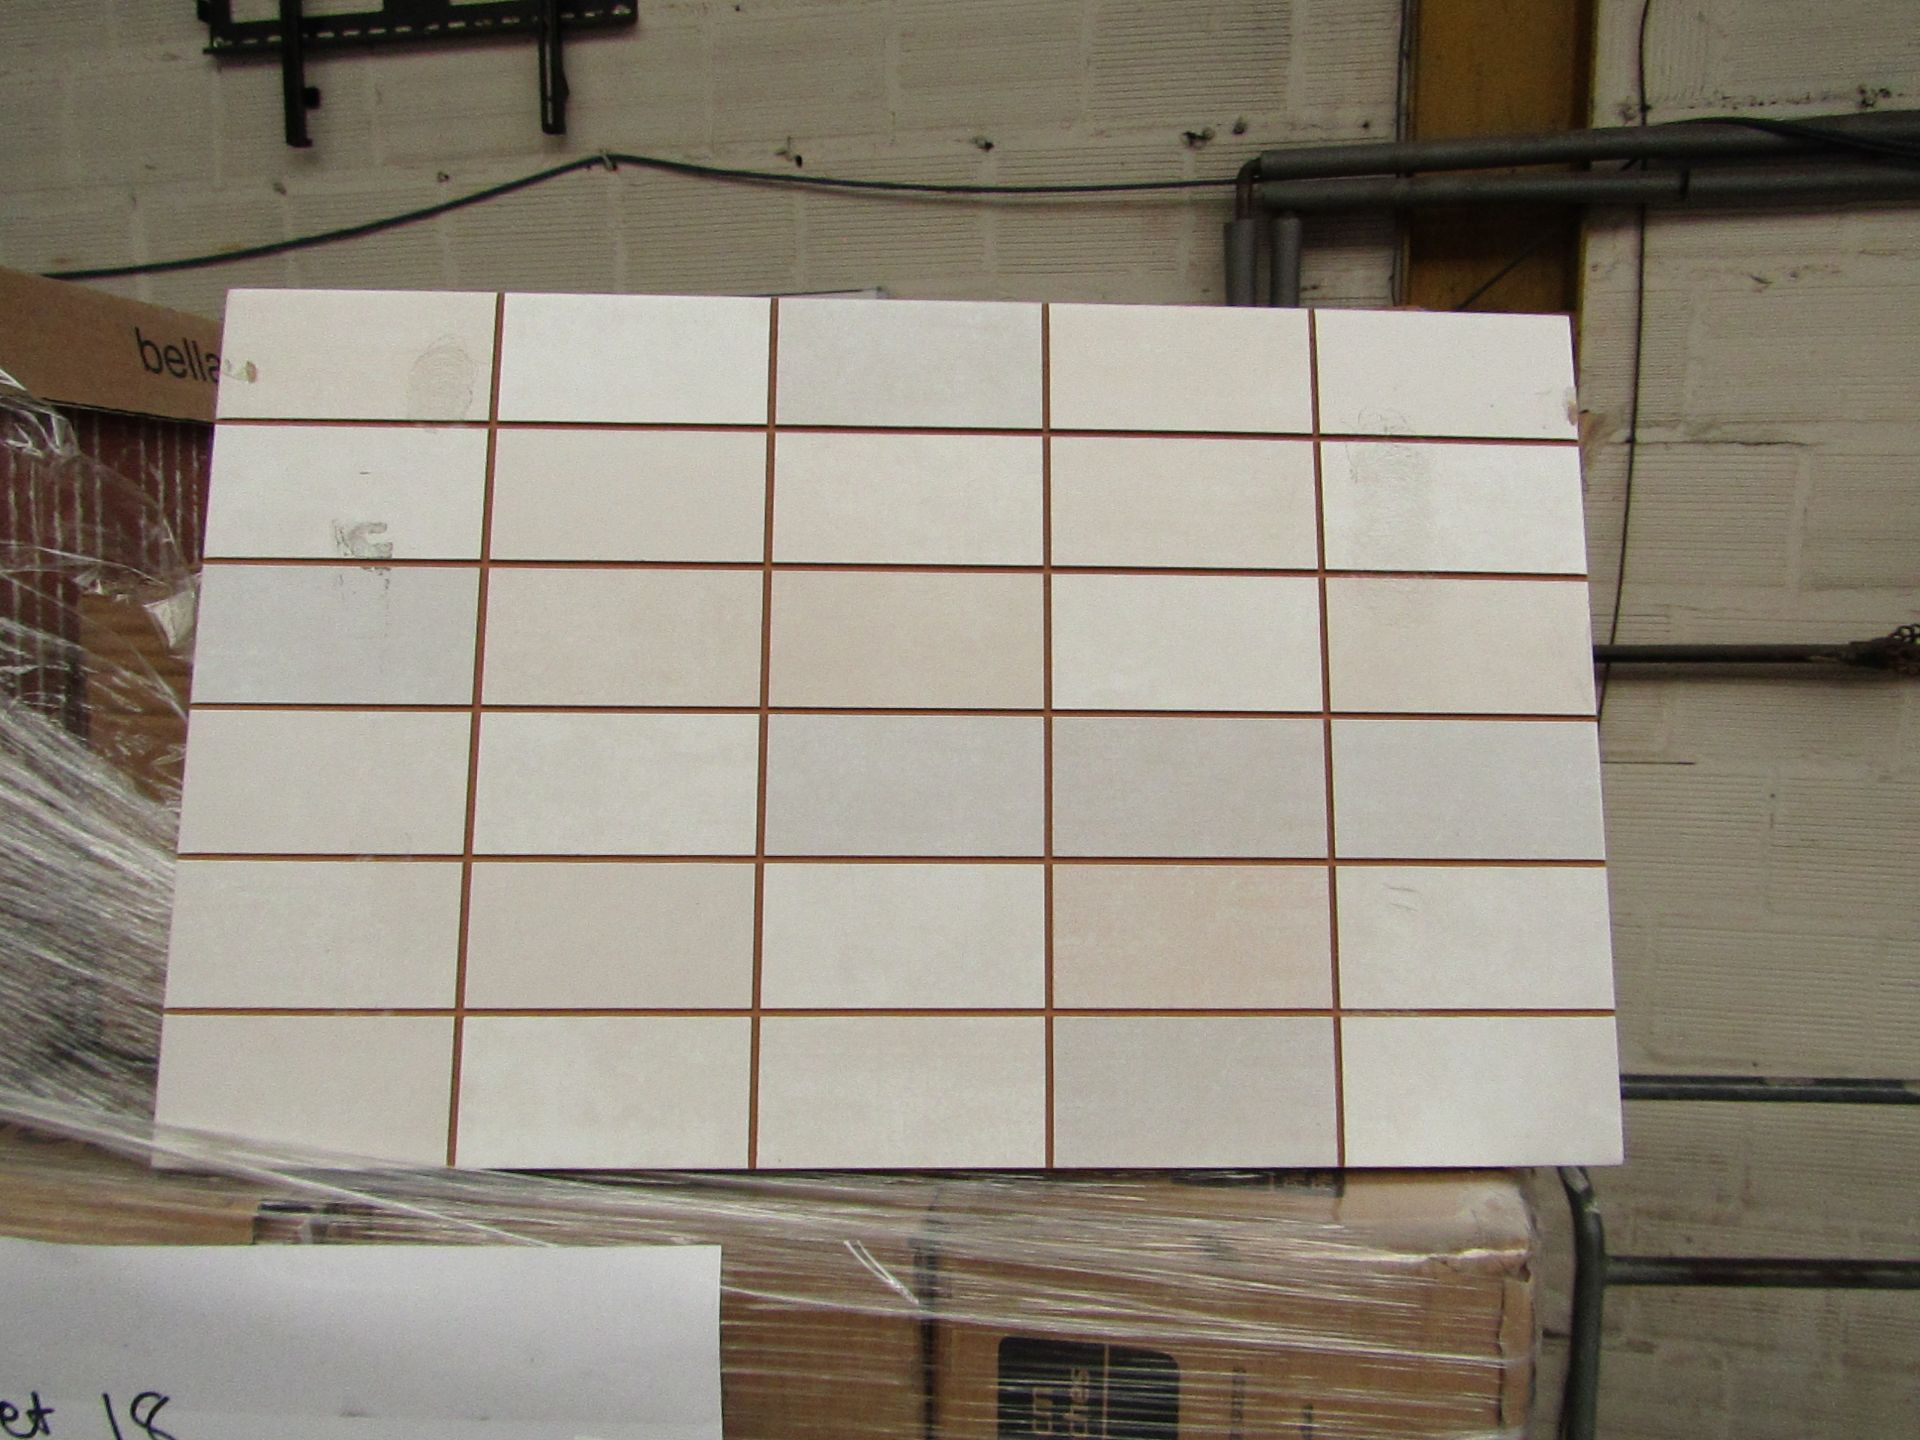 Lotto 391 - 10x packs of 17 Bella Vista Freya Cream mosaic tiles 400x250, RRP £16.66 giving a total lot RRP of